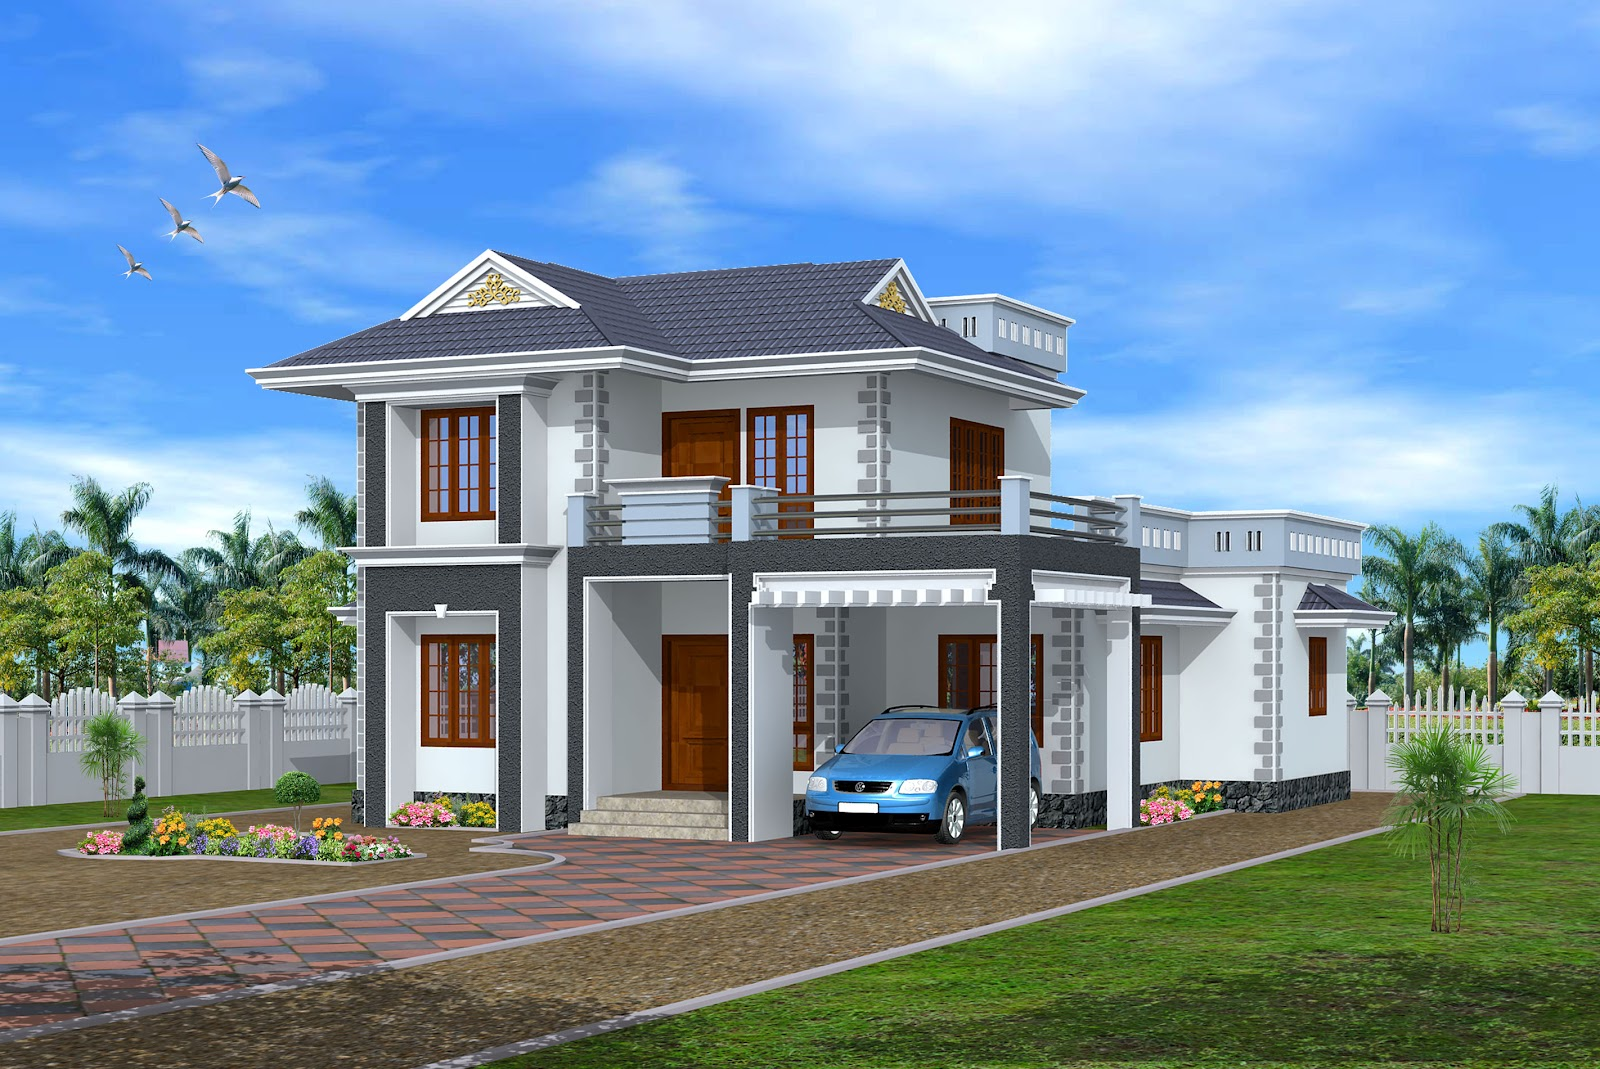 New home designs latest modern homes exterior designs views for New home designs